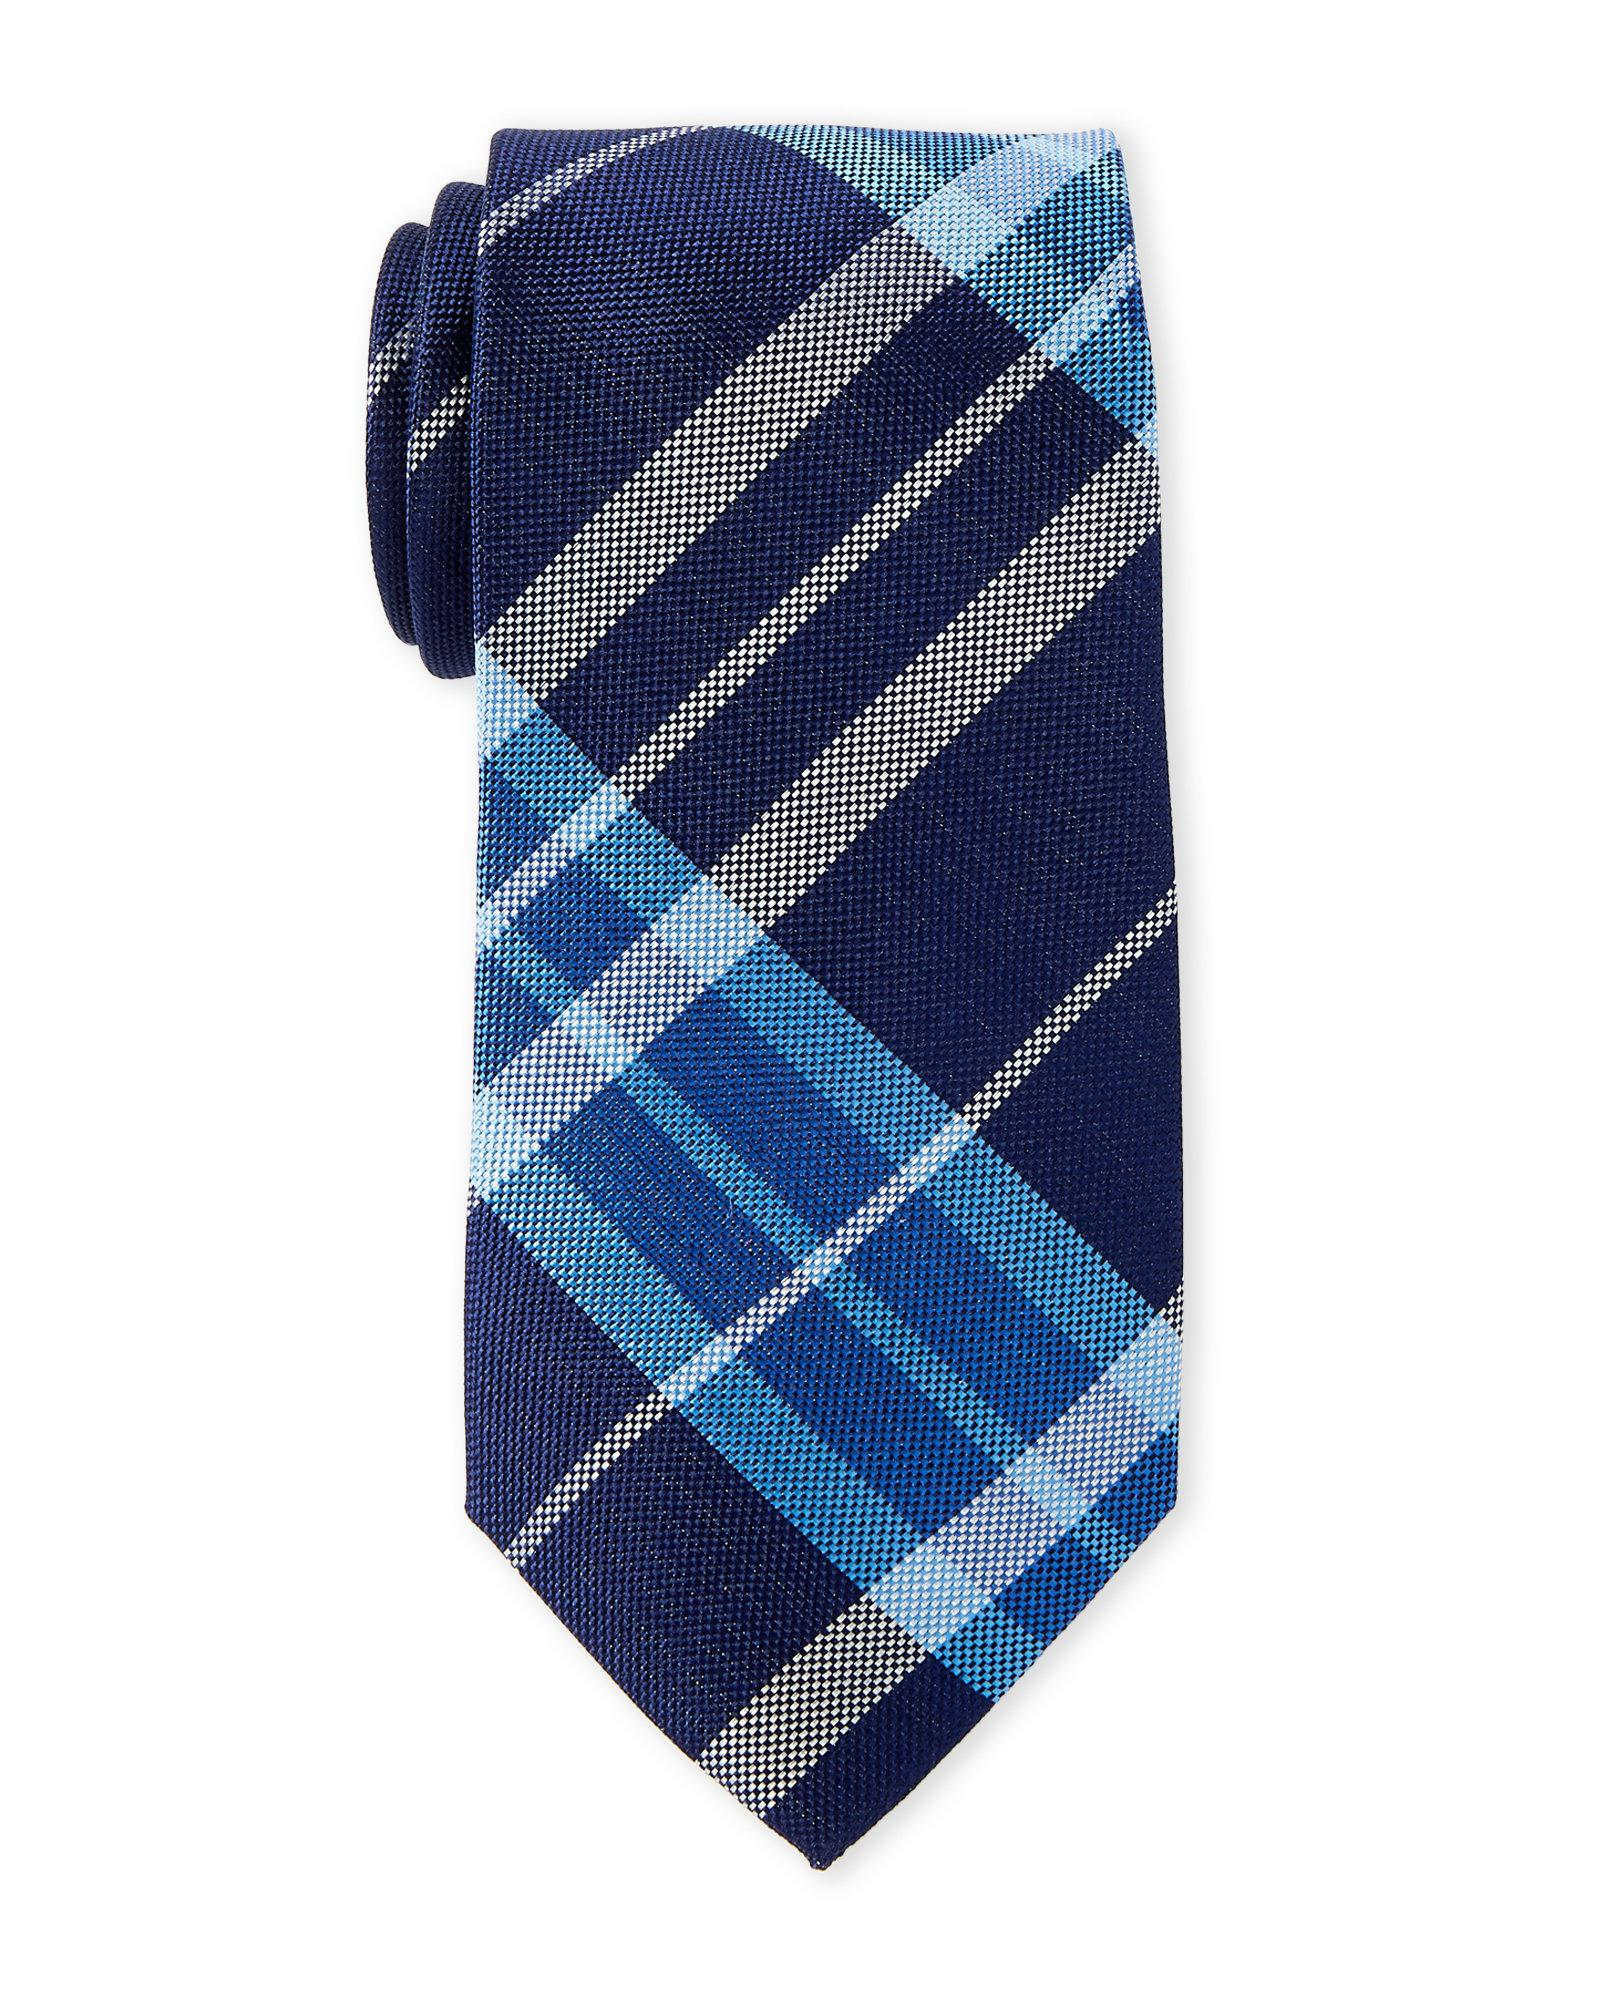 9e16c230f93f Lyst - Tommy Hilfiger Blue Exploded Check Silk Tie in Blue for Men